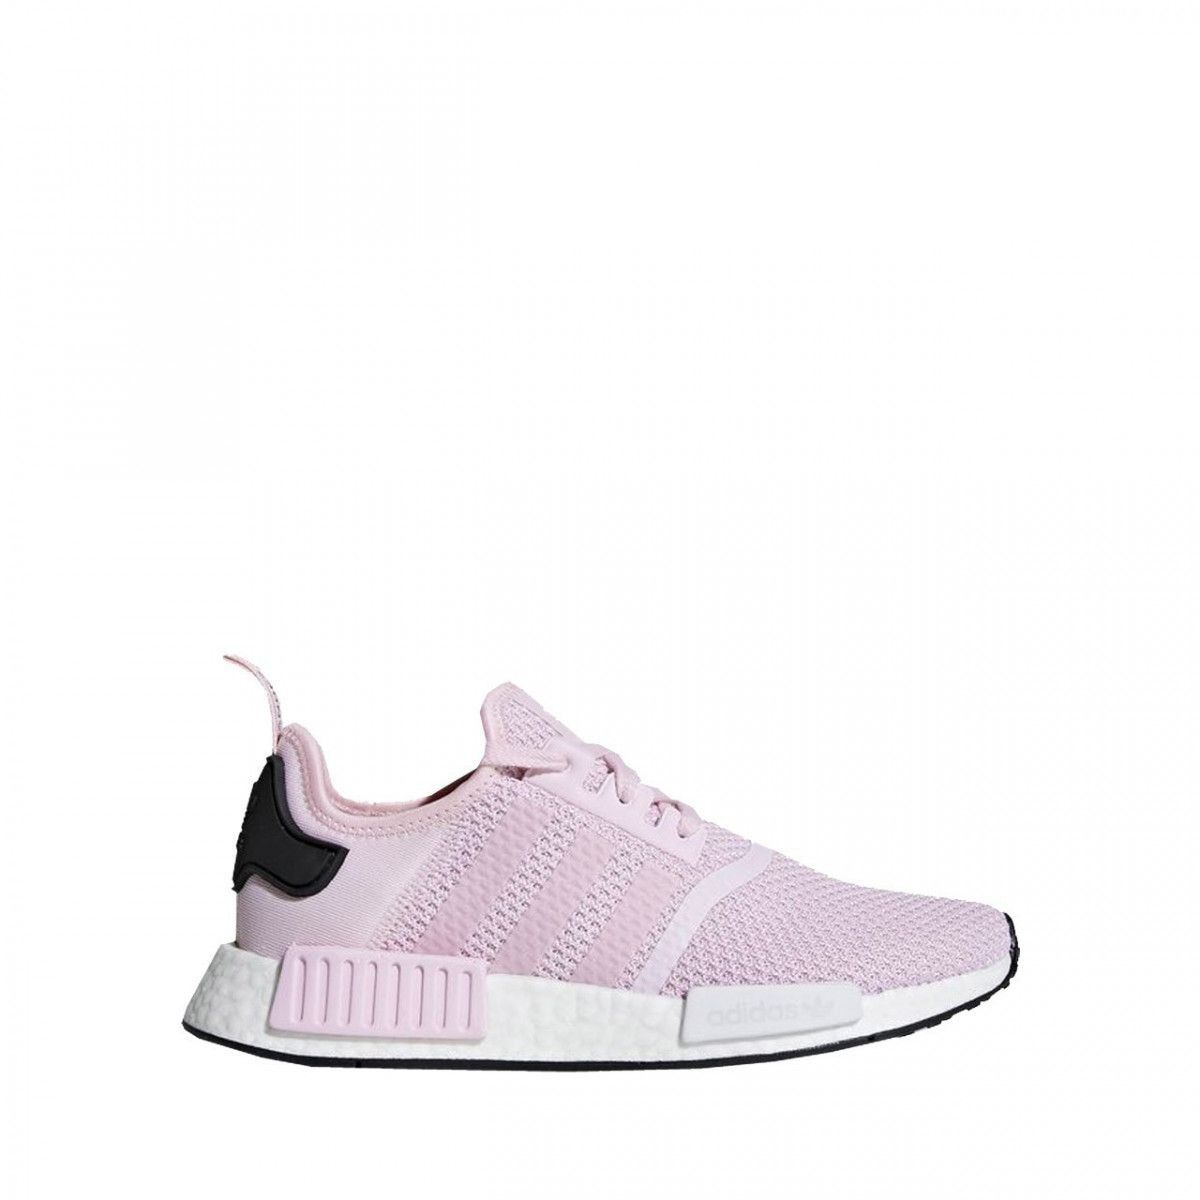 chaussures adidas femme 36